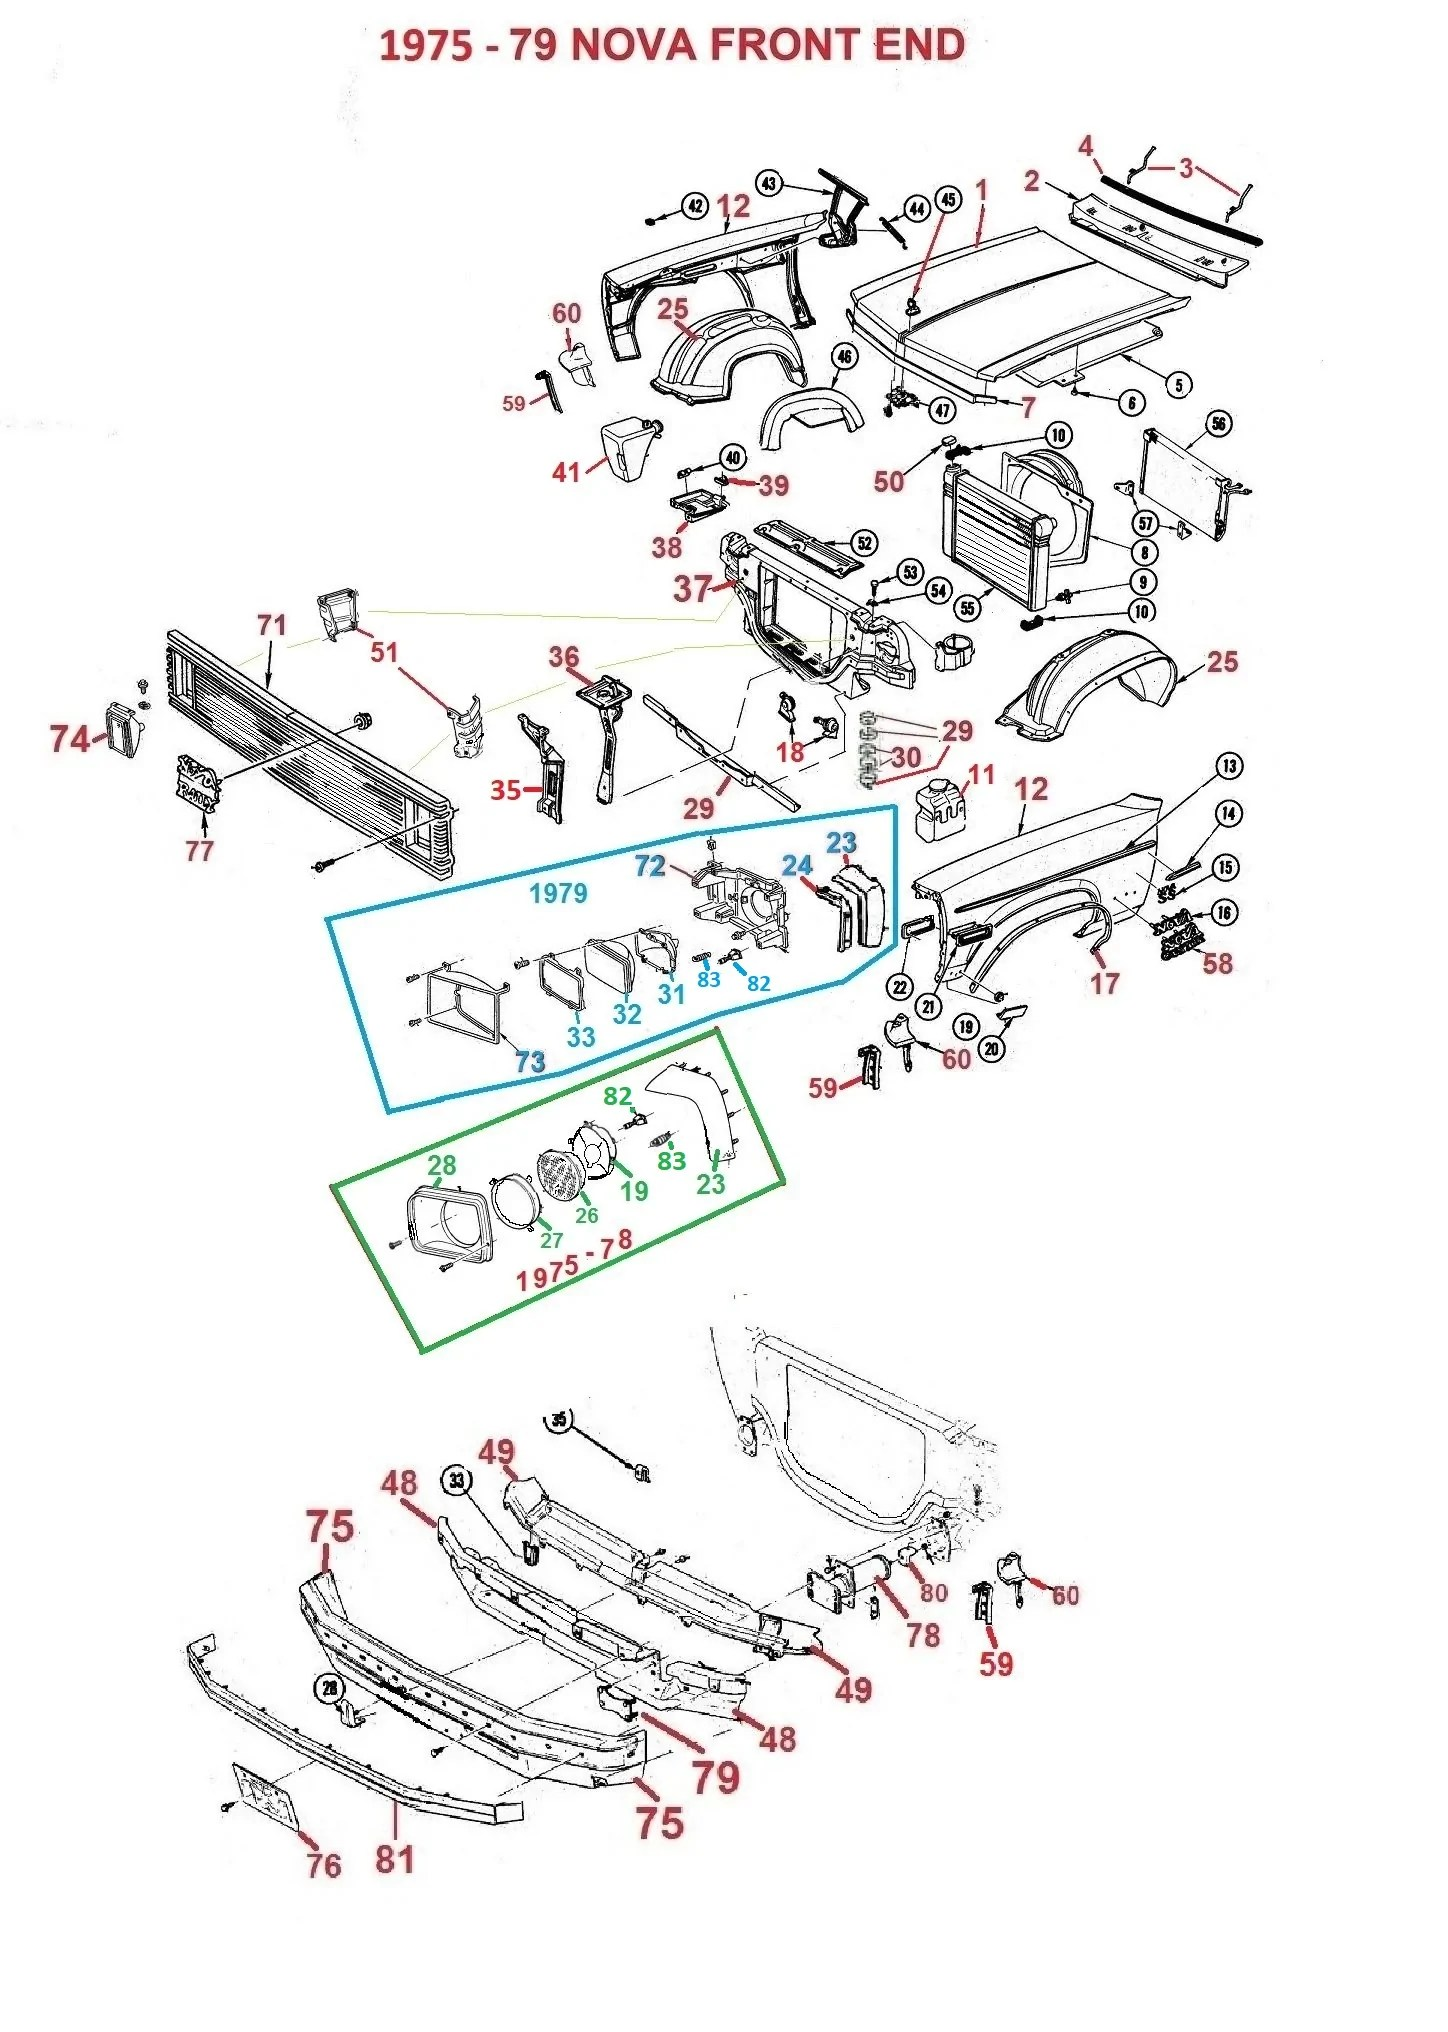 hight resolution of  1976 nova wiring diagram 1962 75 79 nova front end parts chicago muscle car parts inc concours